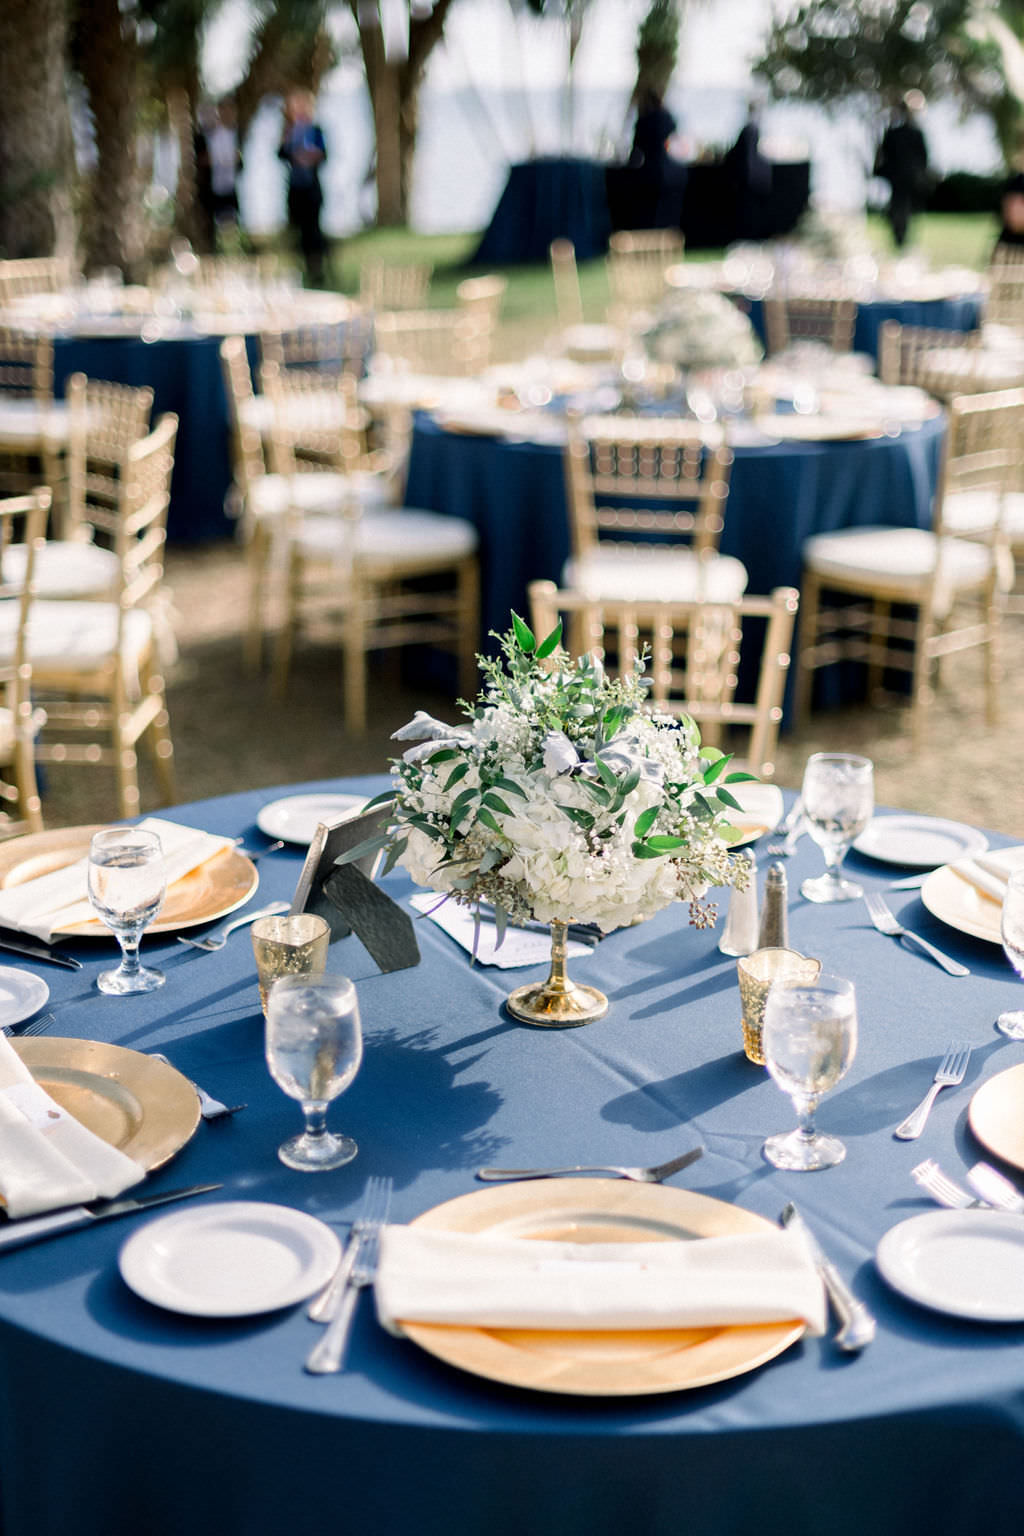 Elegant, Vintage Inspired Wedding Decor, Outdoor Reception, Navy Blue Table Linens, Gold Chargers, Low Floral Centerpiece, White and Ivory Florals, at Powel Crosley Estate | Sarasota Wedding Planner Laura Detwiler Events